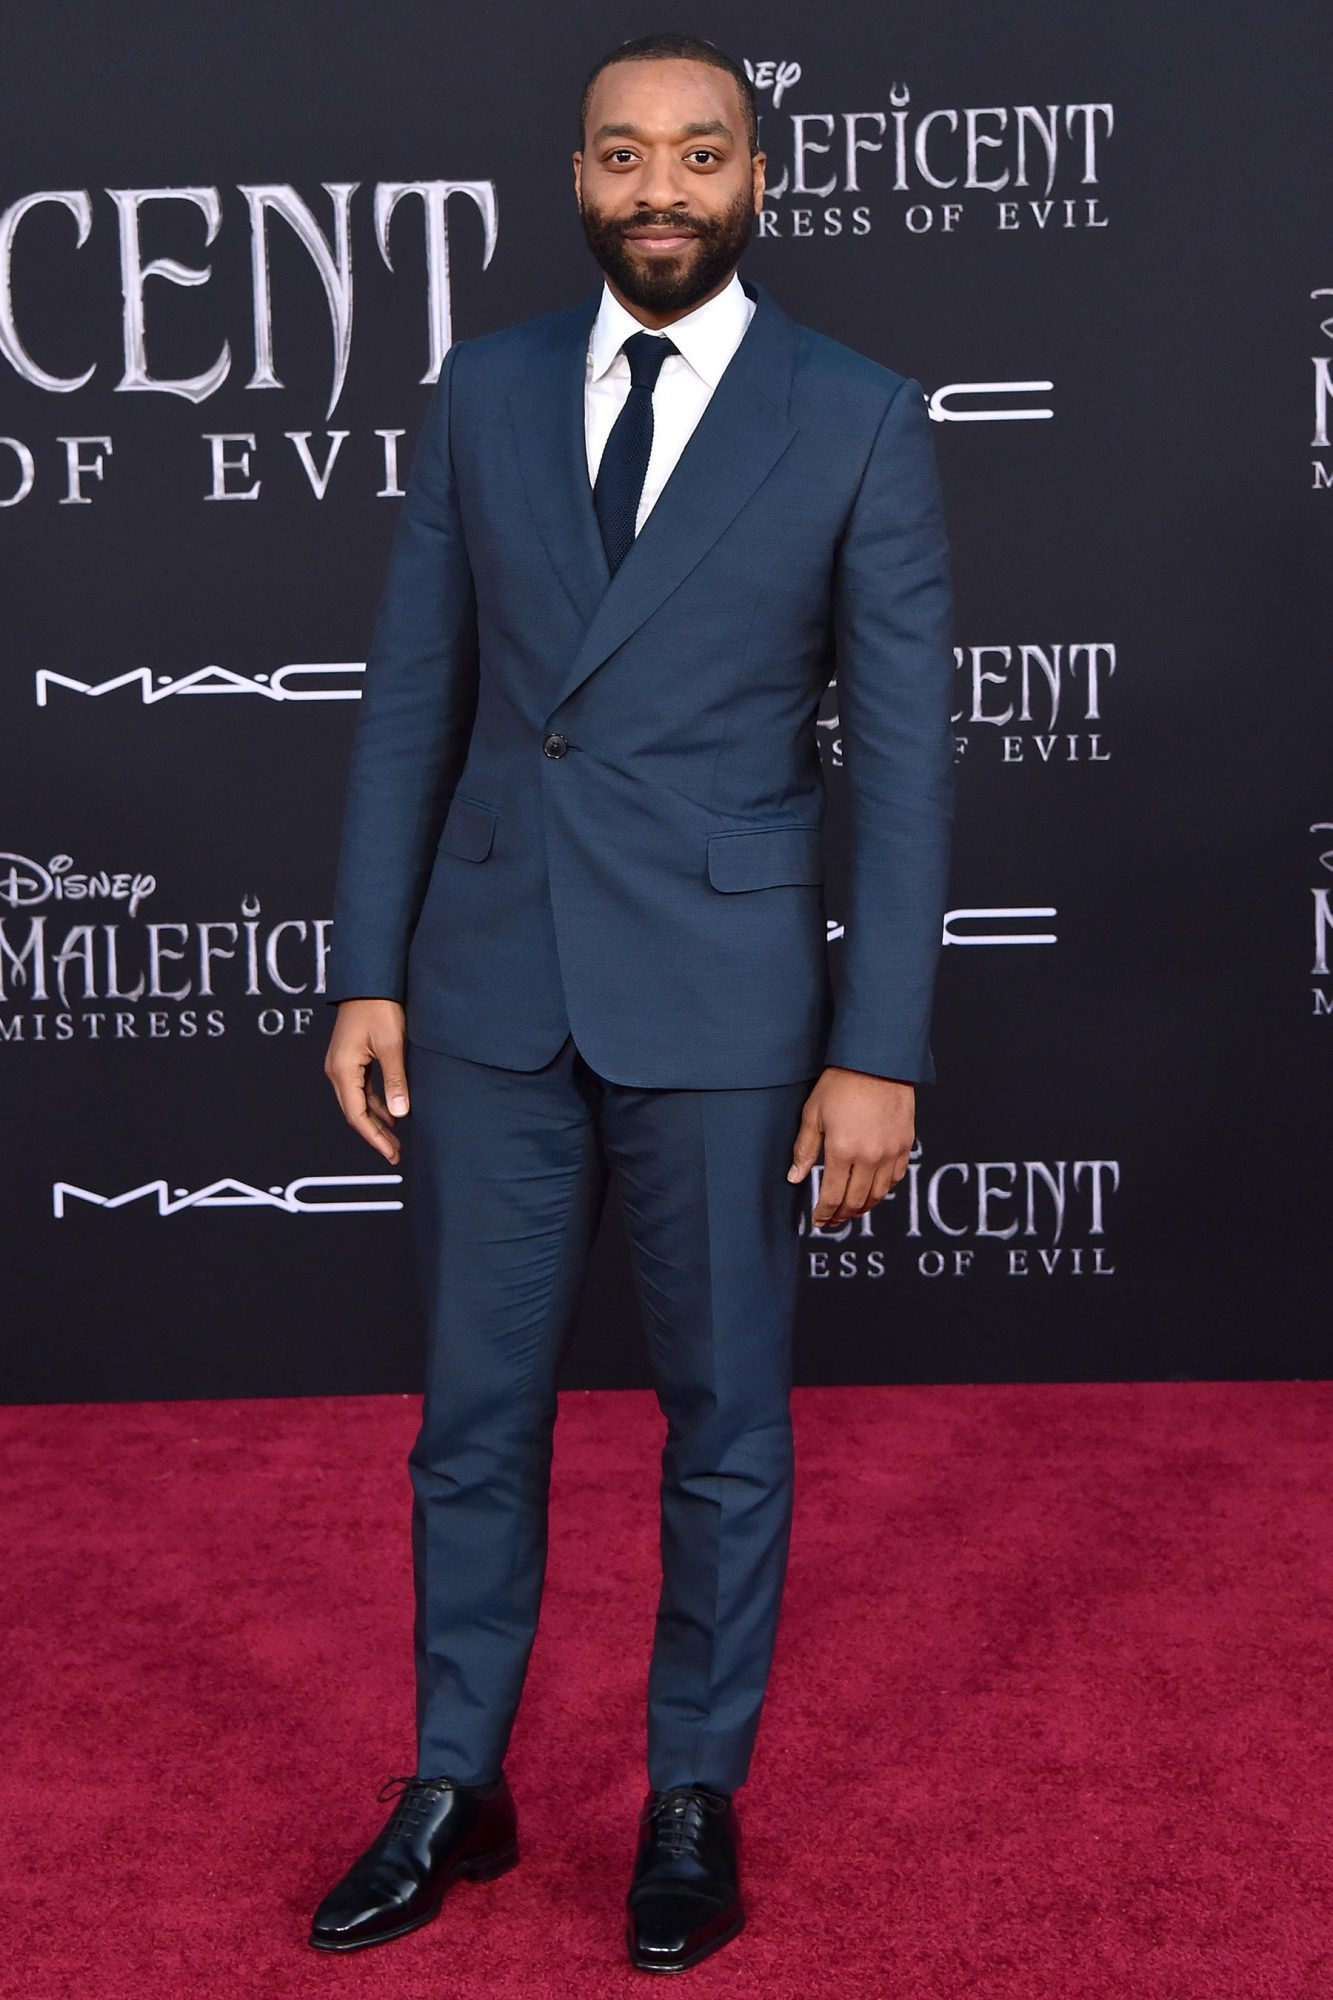 Maleficent: Mistress of Evil Premiere